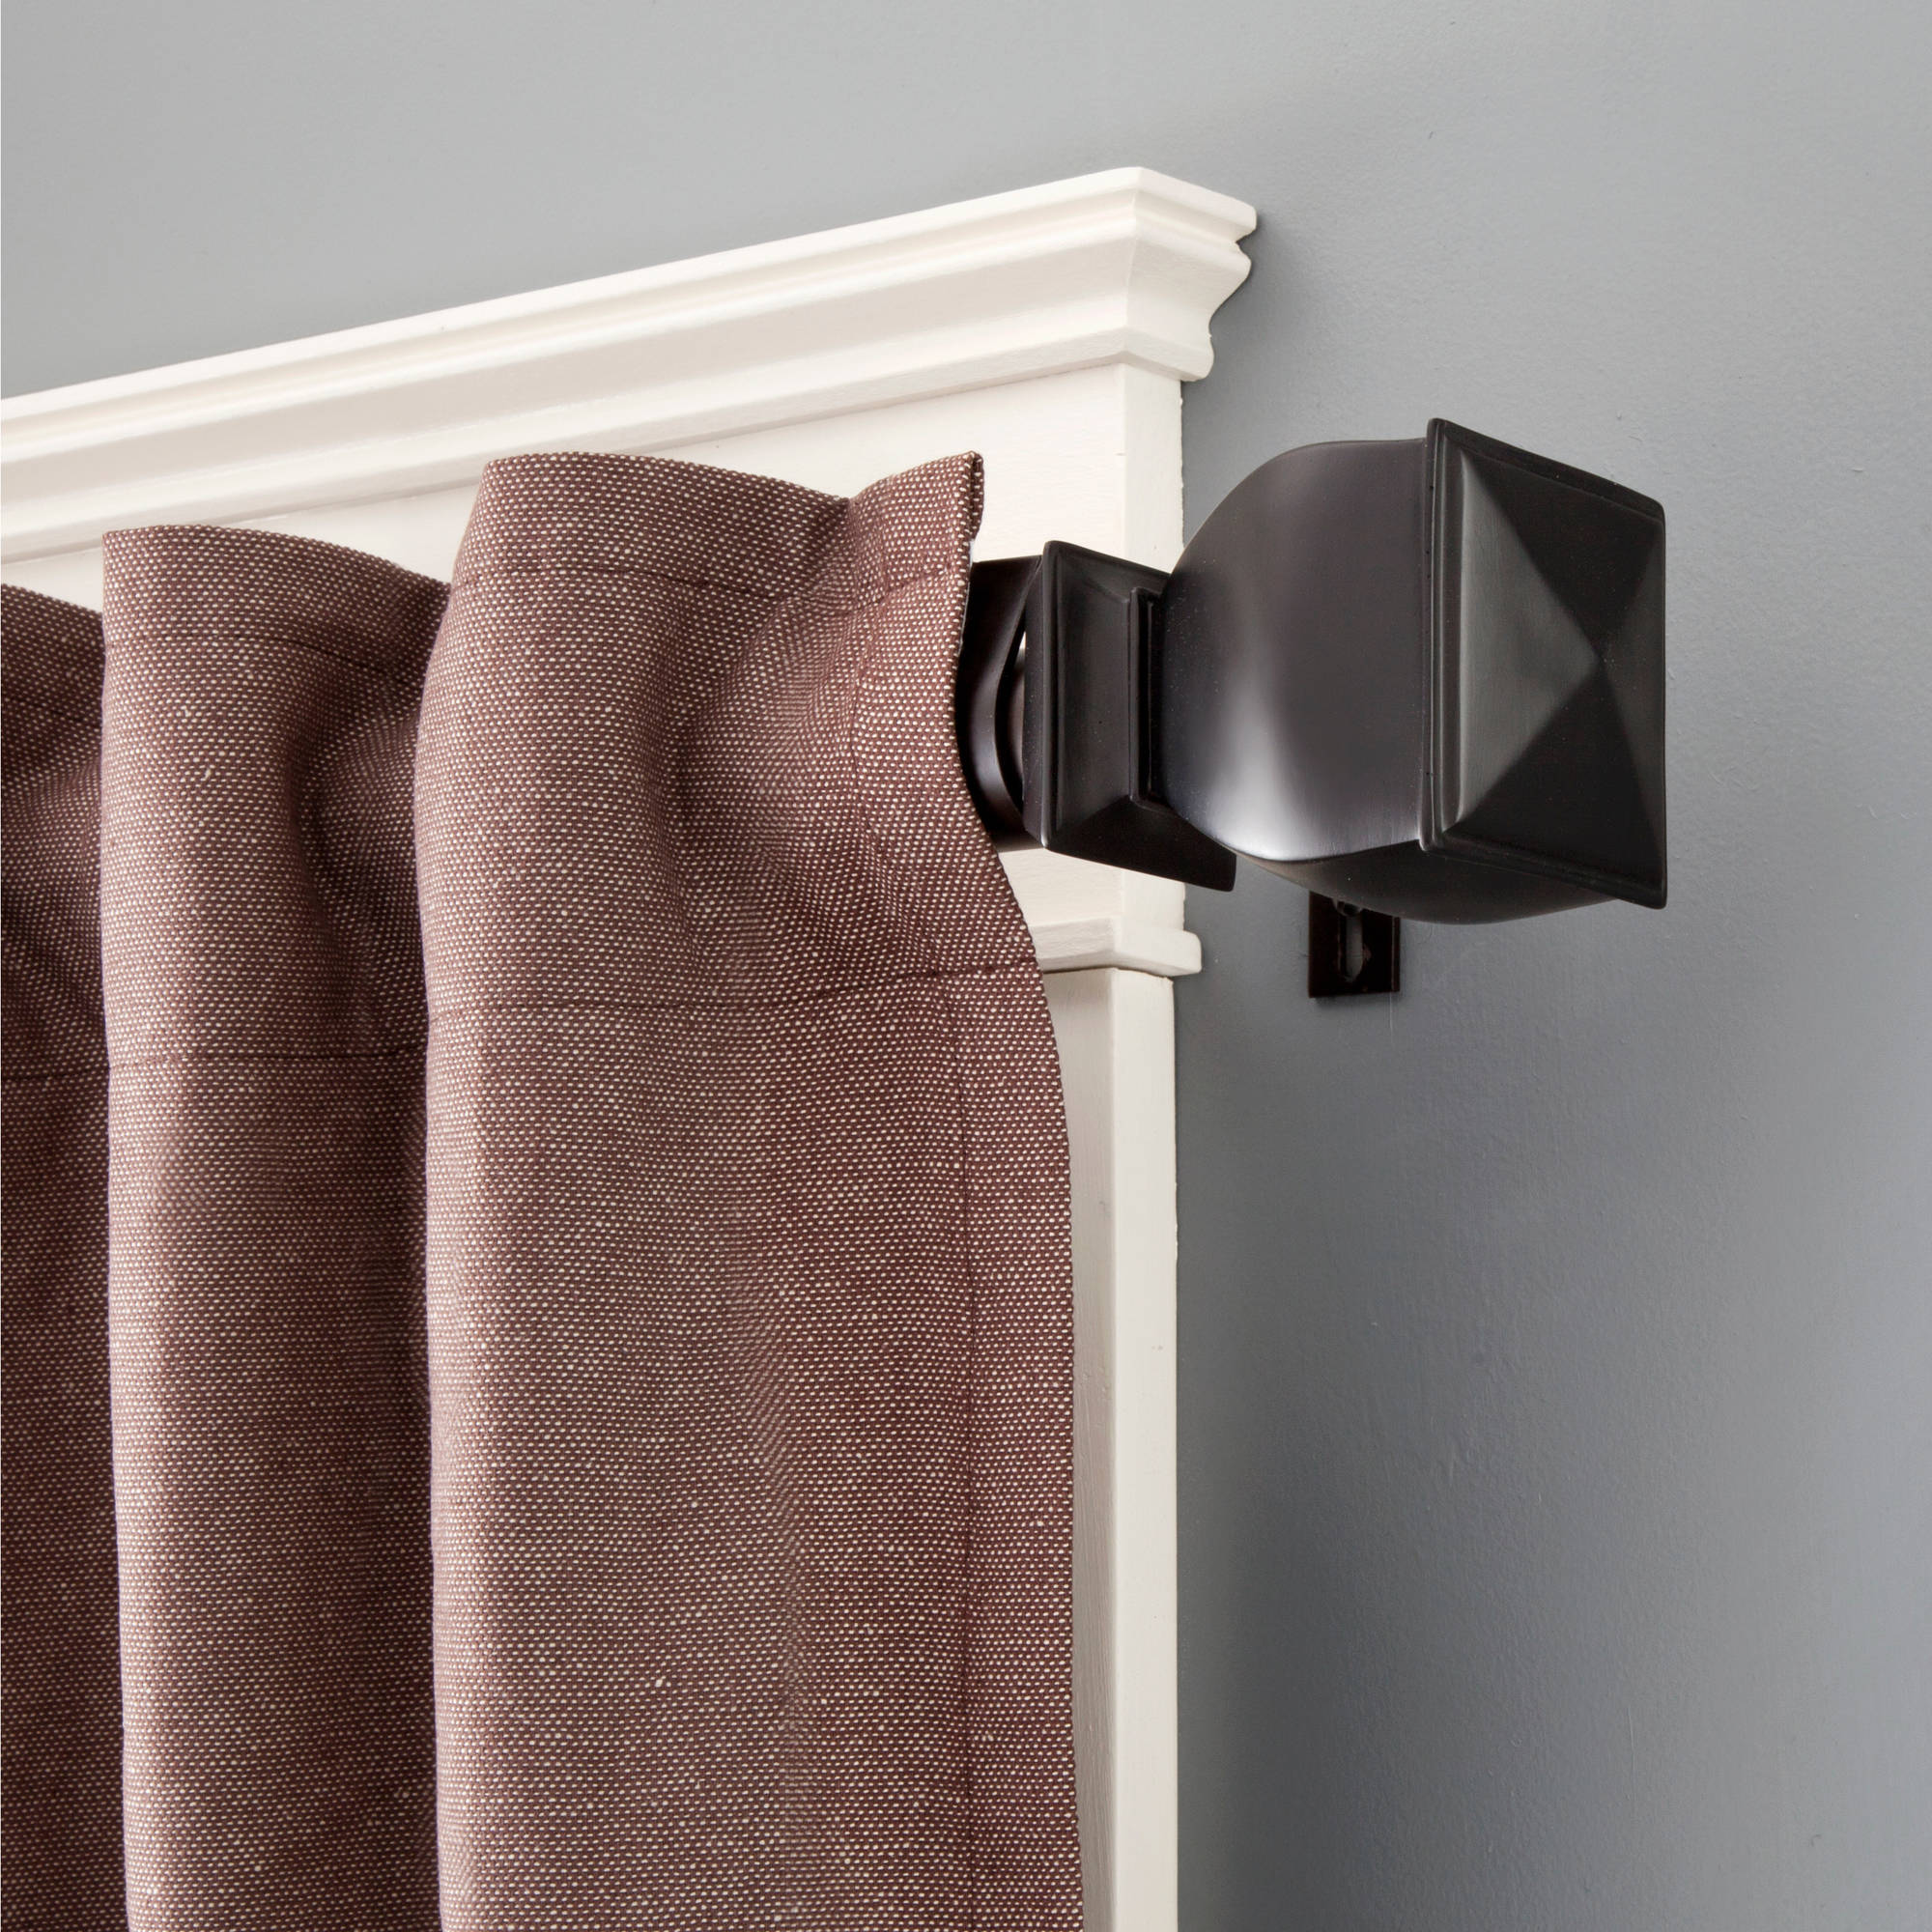 "Kenney 1-1/4"" Diameter Sausalito Curtain Rod"